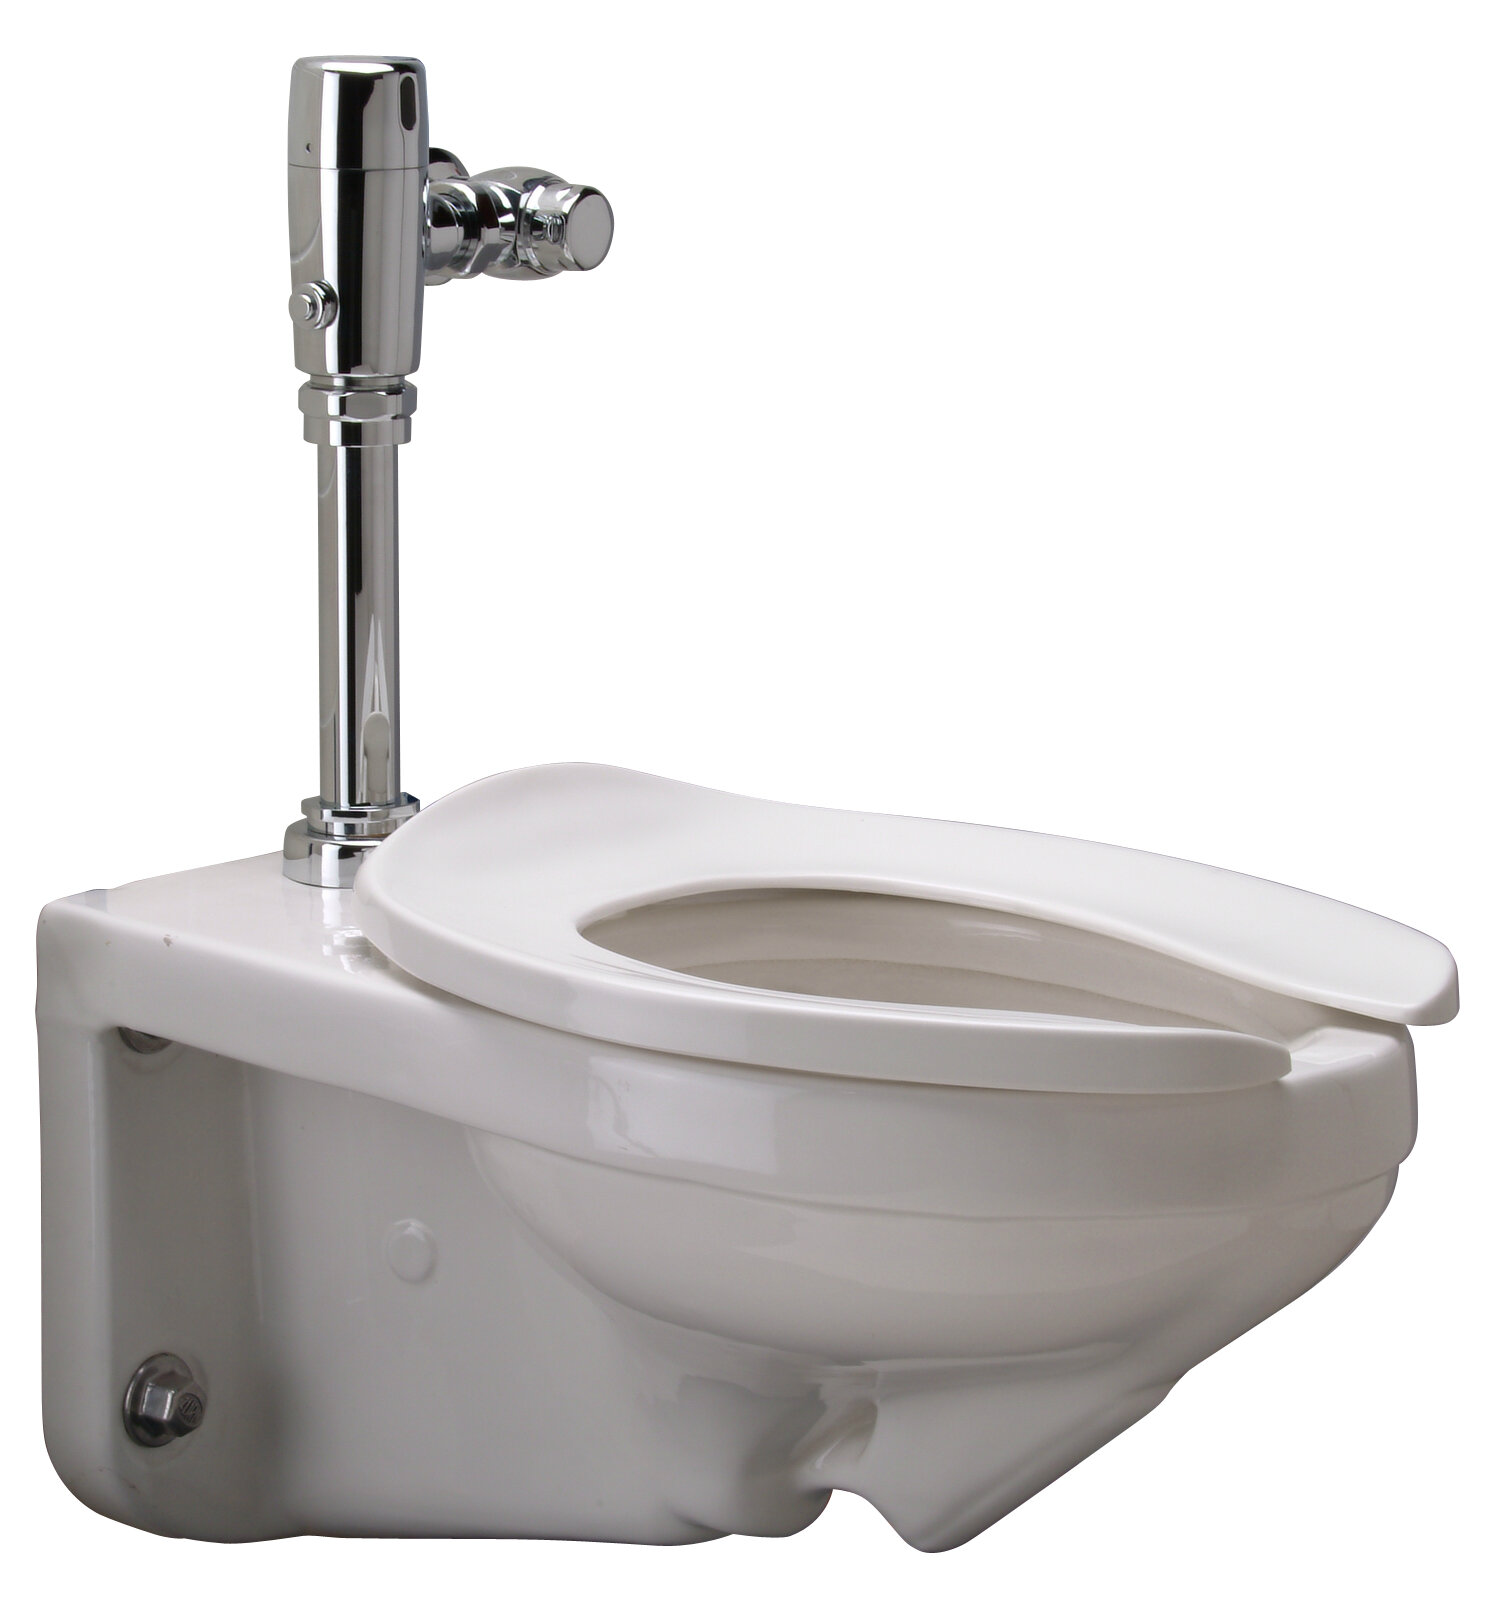 Zurn wall mounted gpf elongated one piece toilet for Flush with the wall